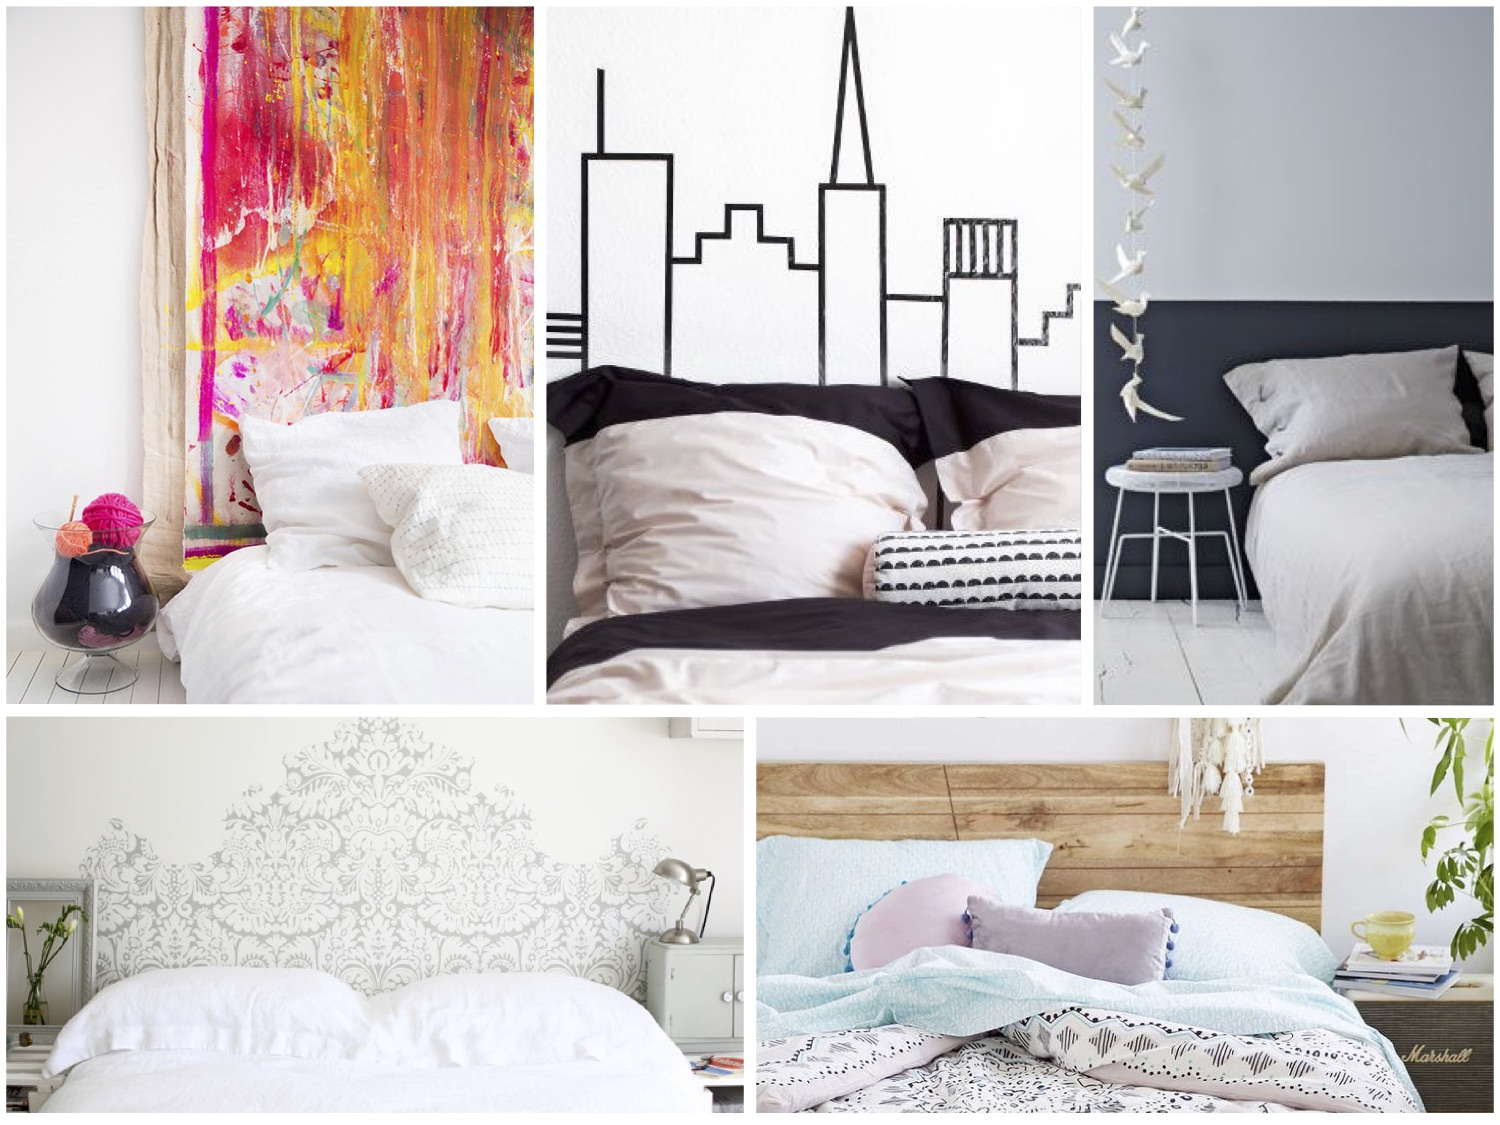 11 creative alternatives to the traditional headboard for Headboard alternatives